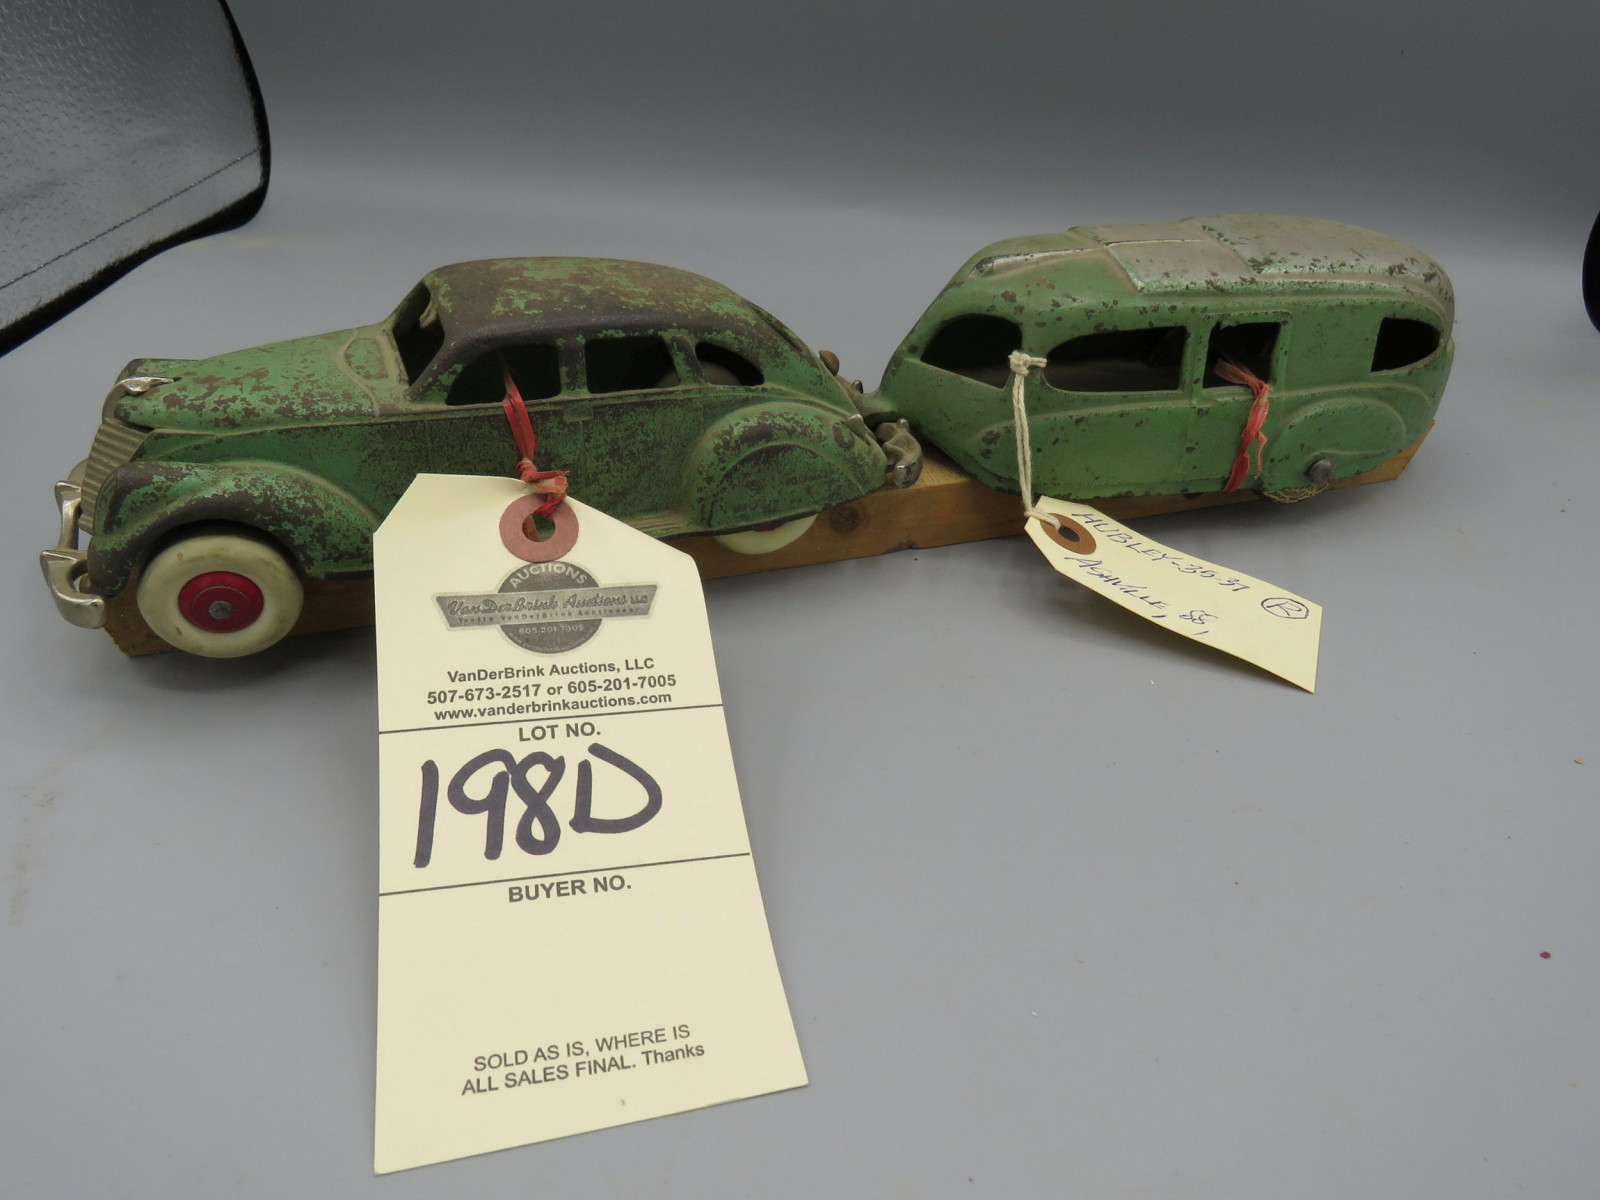 Hubley Cast Iron Car with Camper @1935 Approx. 14 inches - Image 1